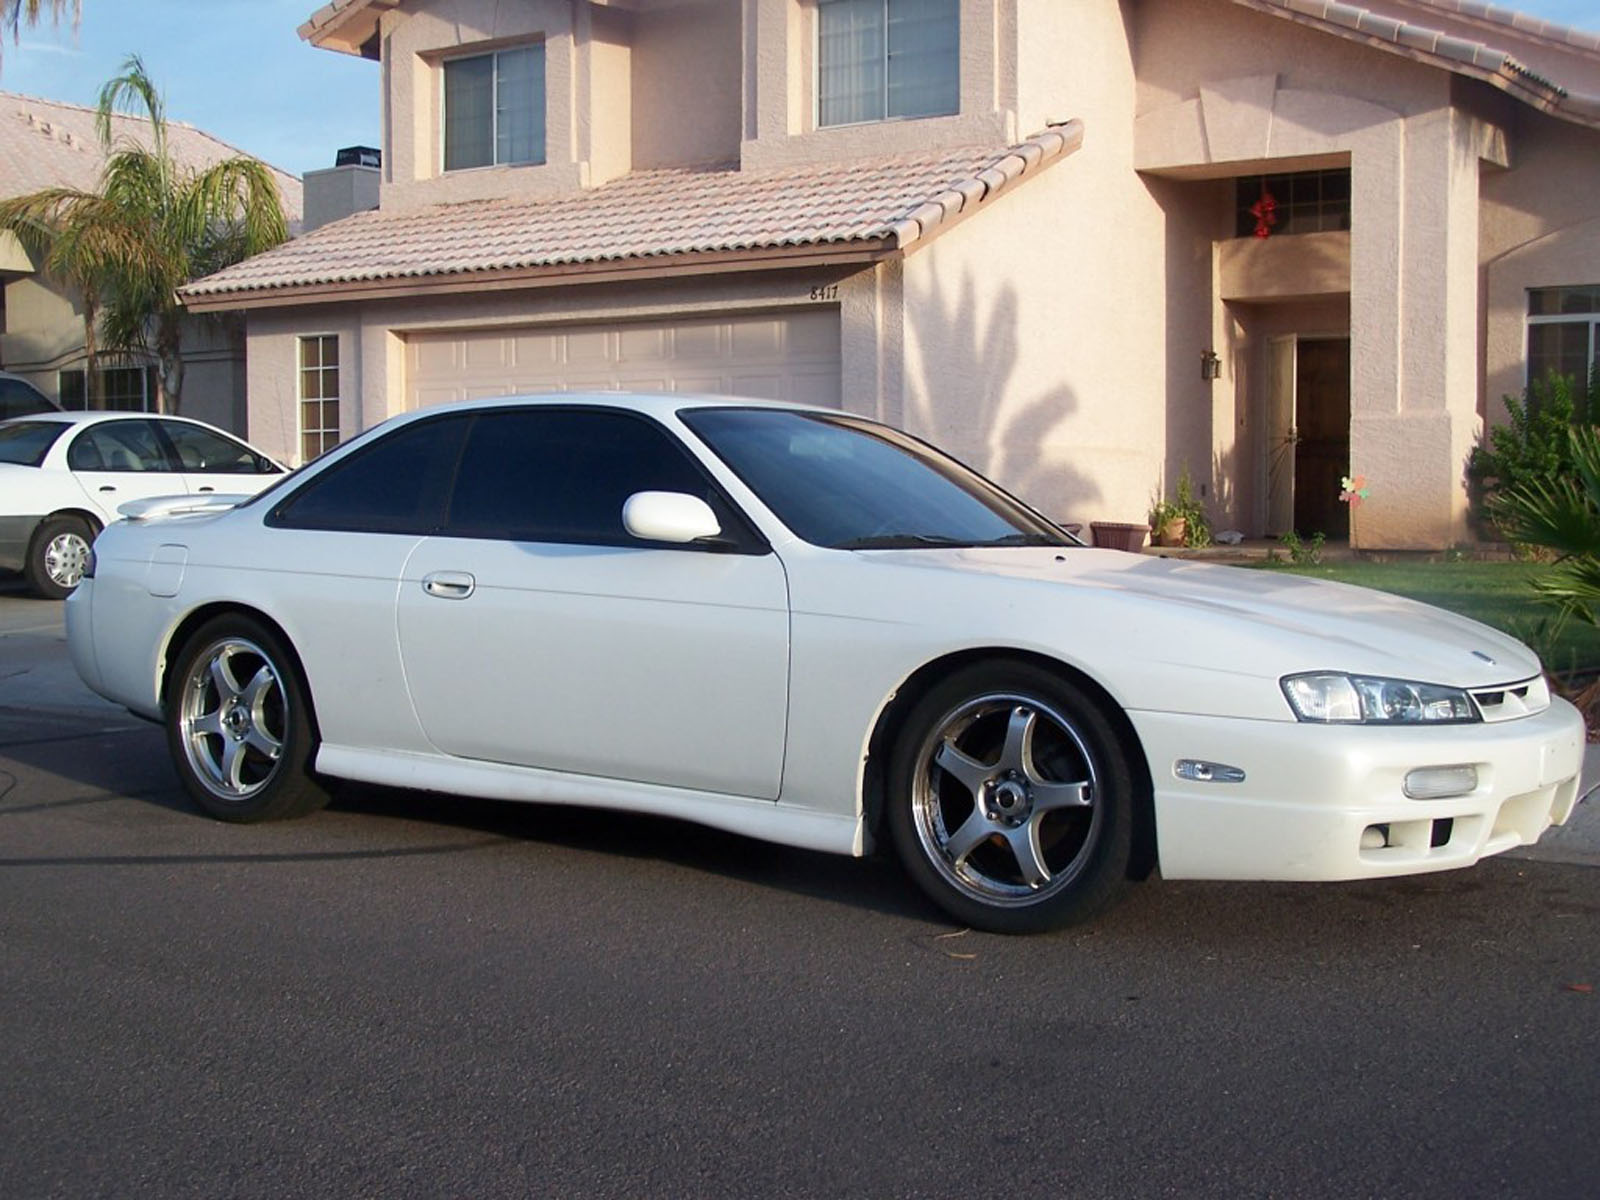 1998 Nissan S14 240sx Se For Sale Peoria Arizona